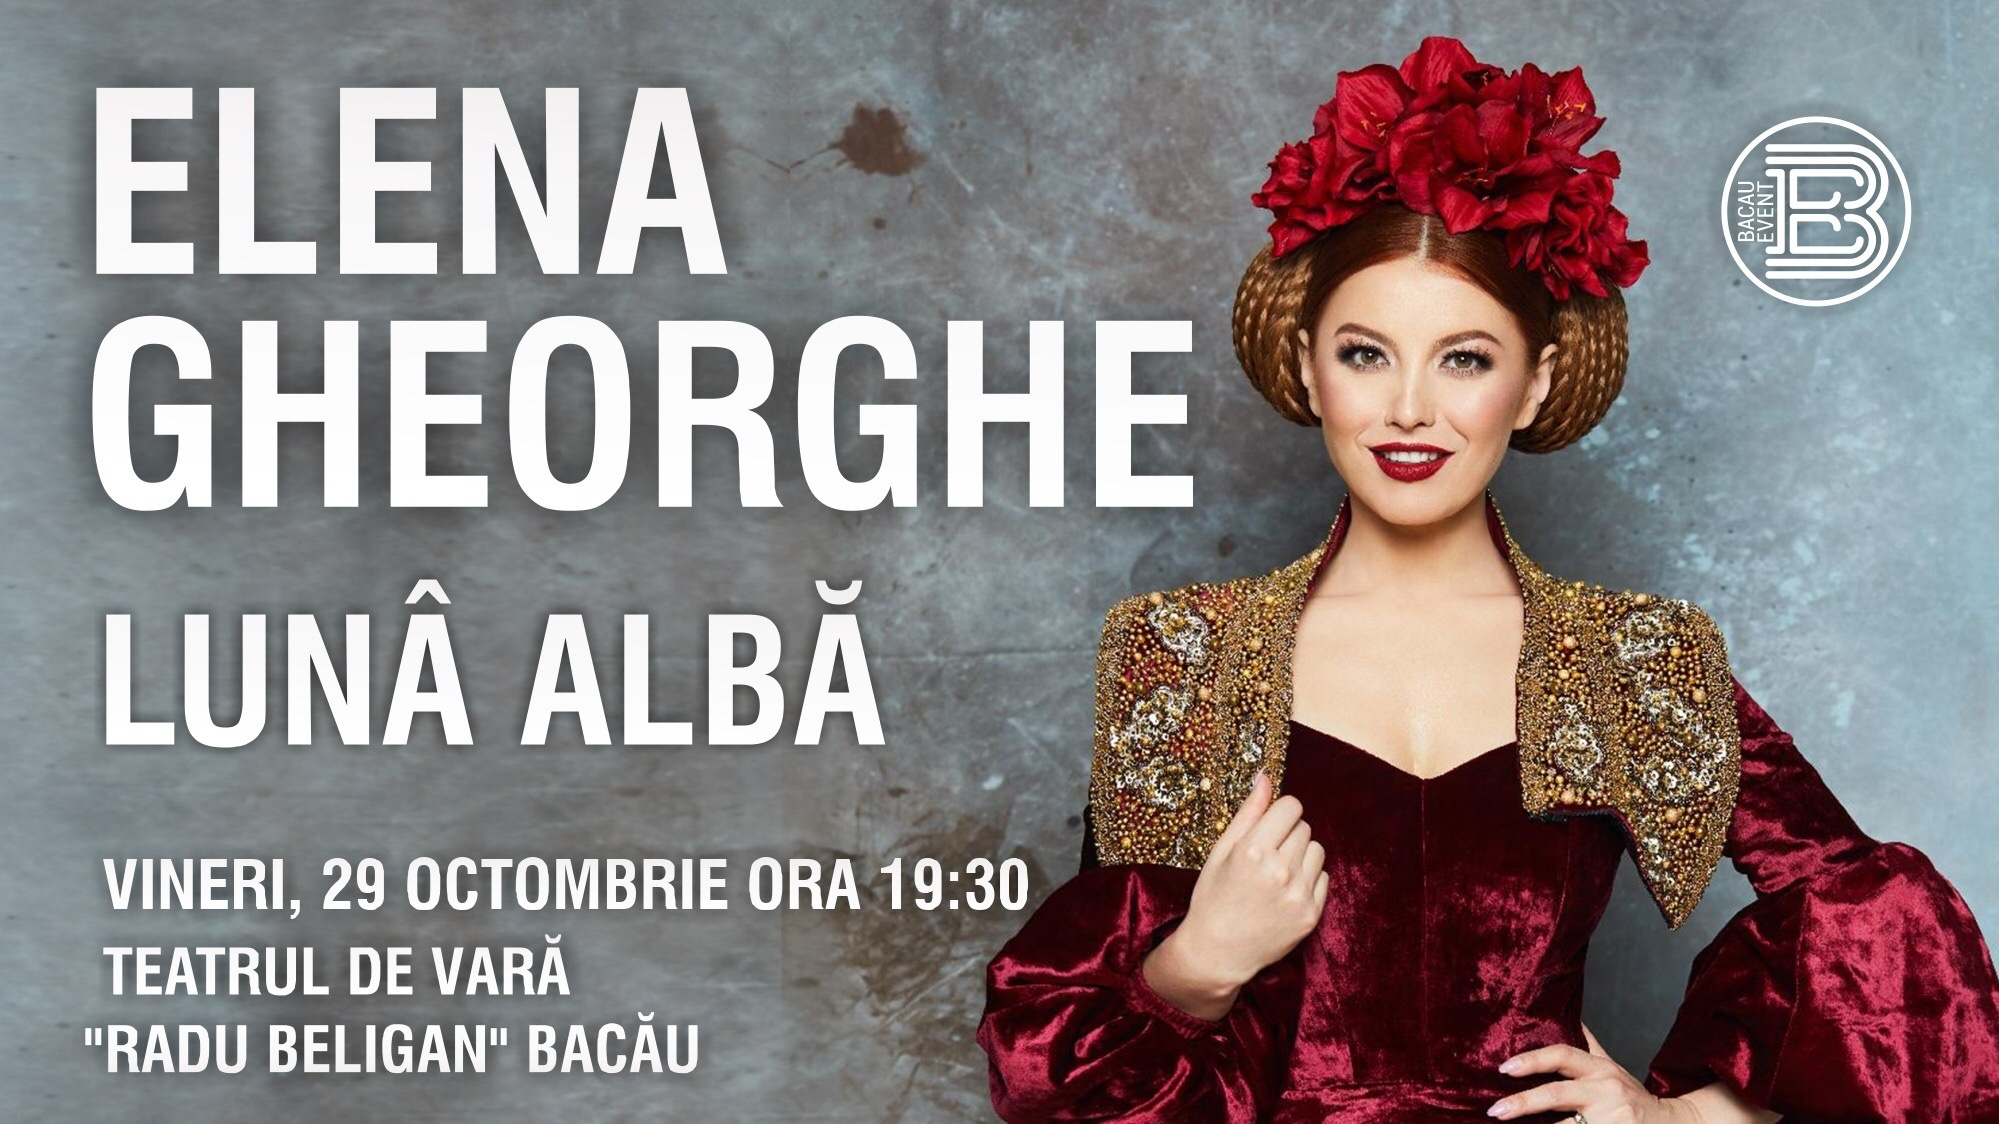 Elena Gheorghe - Octombrie